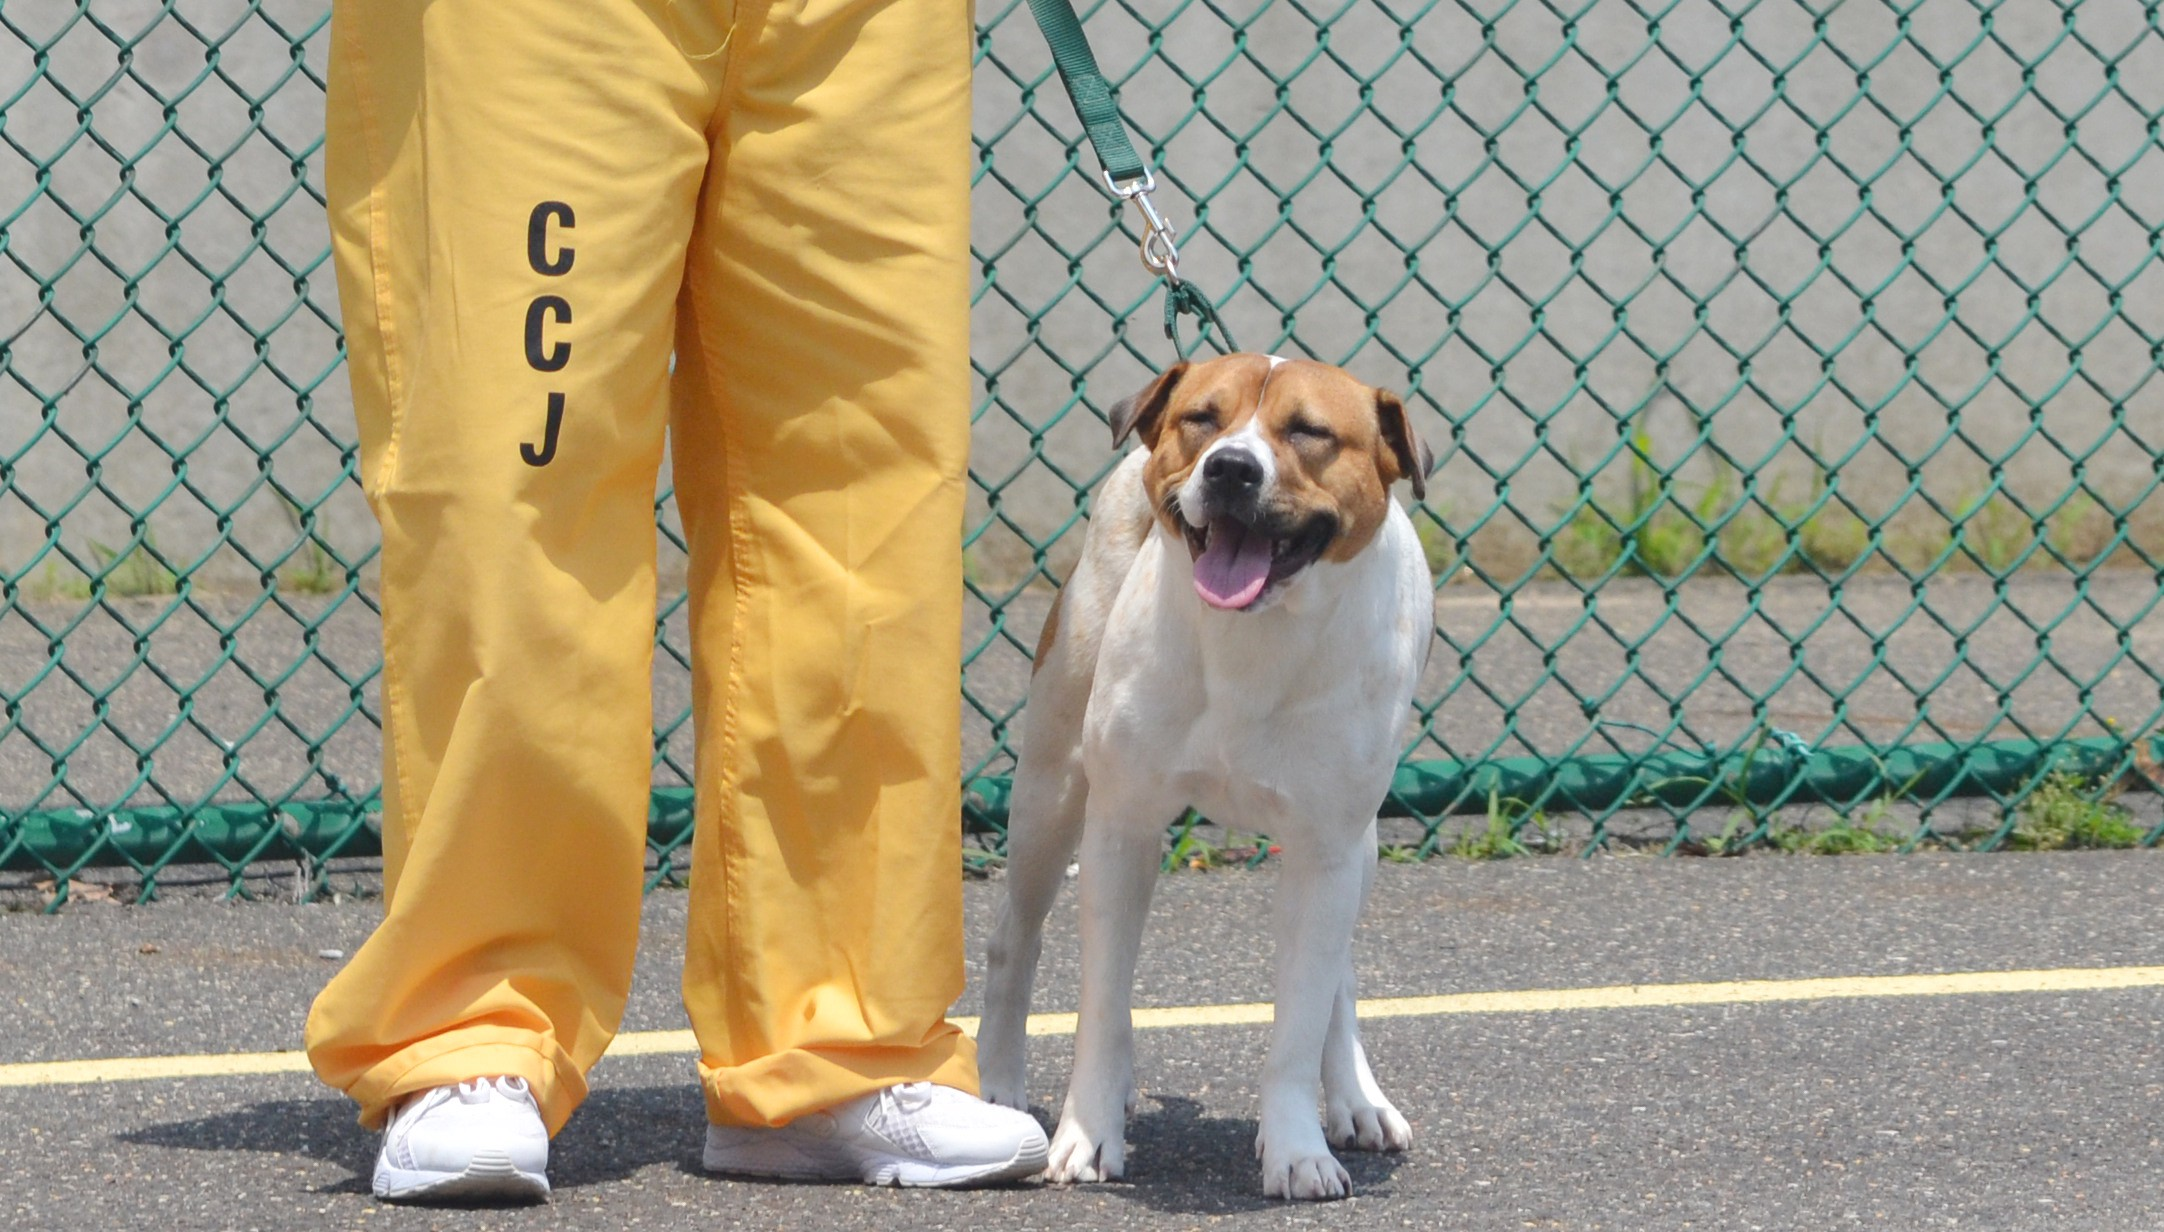 Weekly Roundup: Camden County inmates help train VAO dogs as